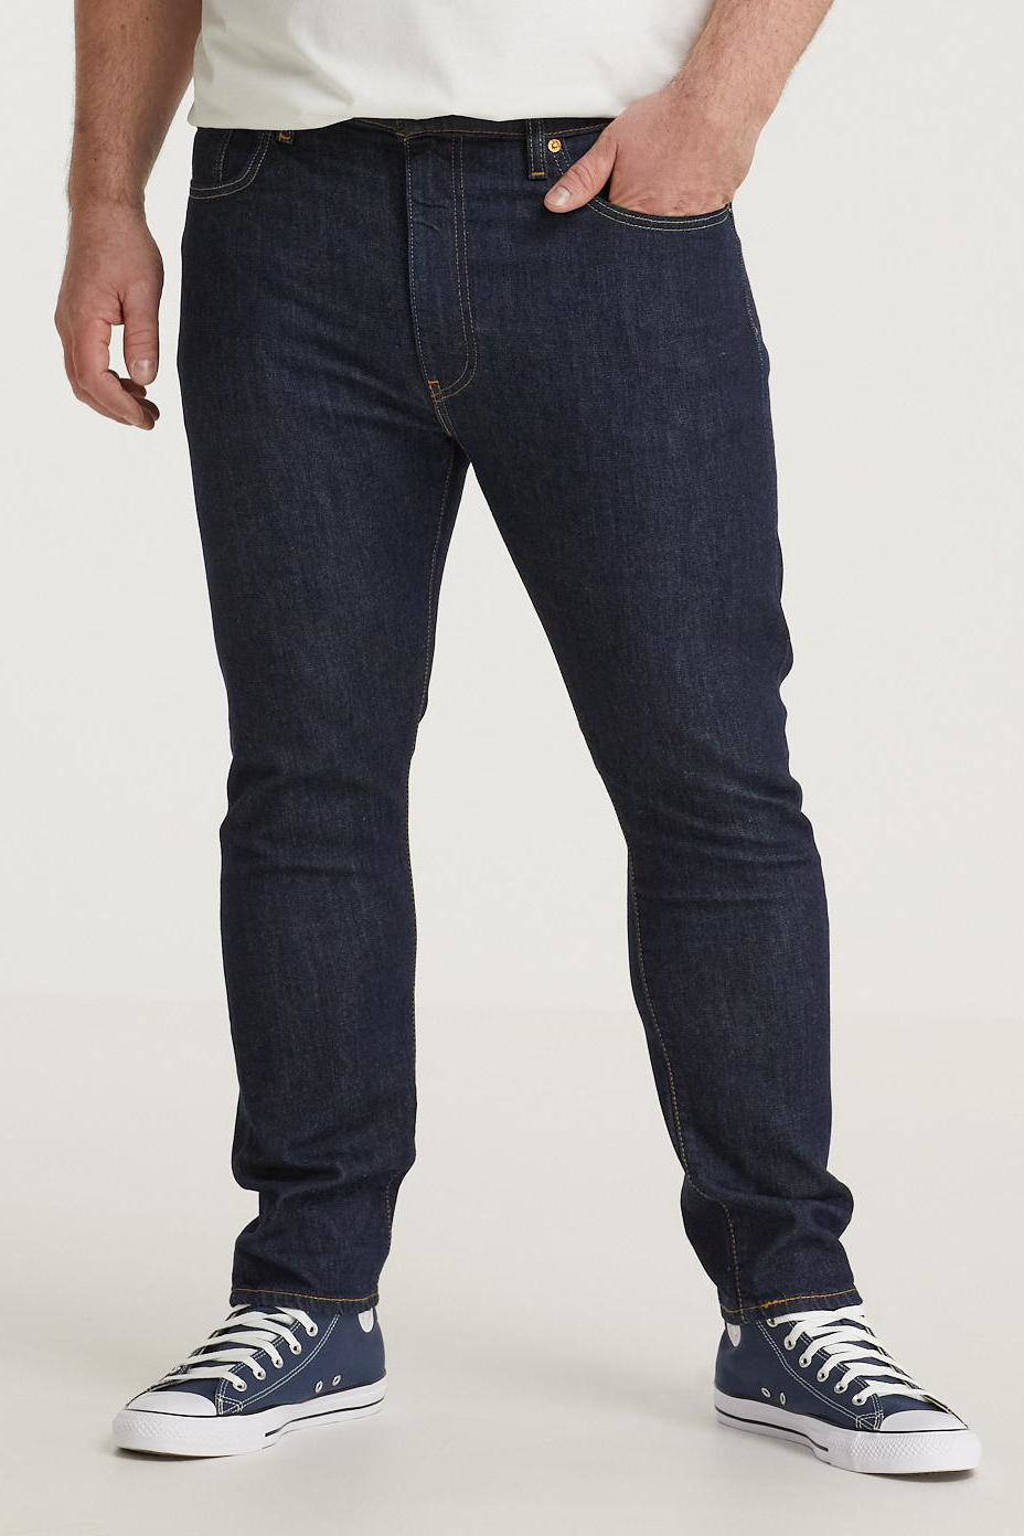 Levi's Big and Tall tapered fit jeans 512 Plus Size donkerblauw, Donkerblauw